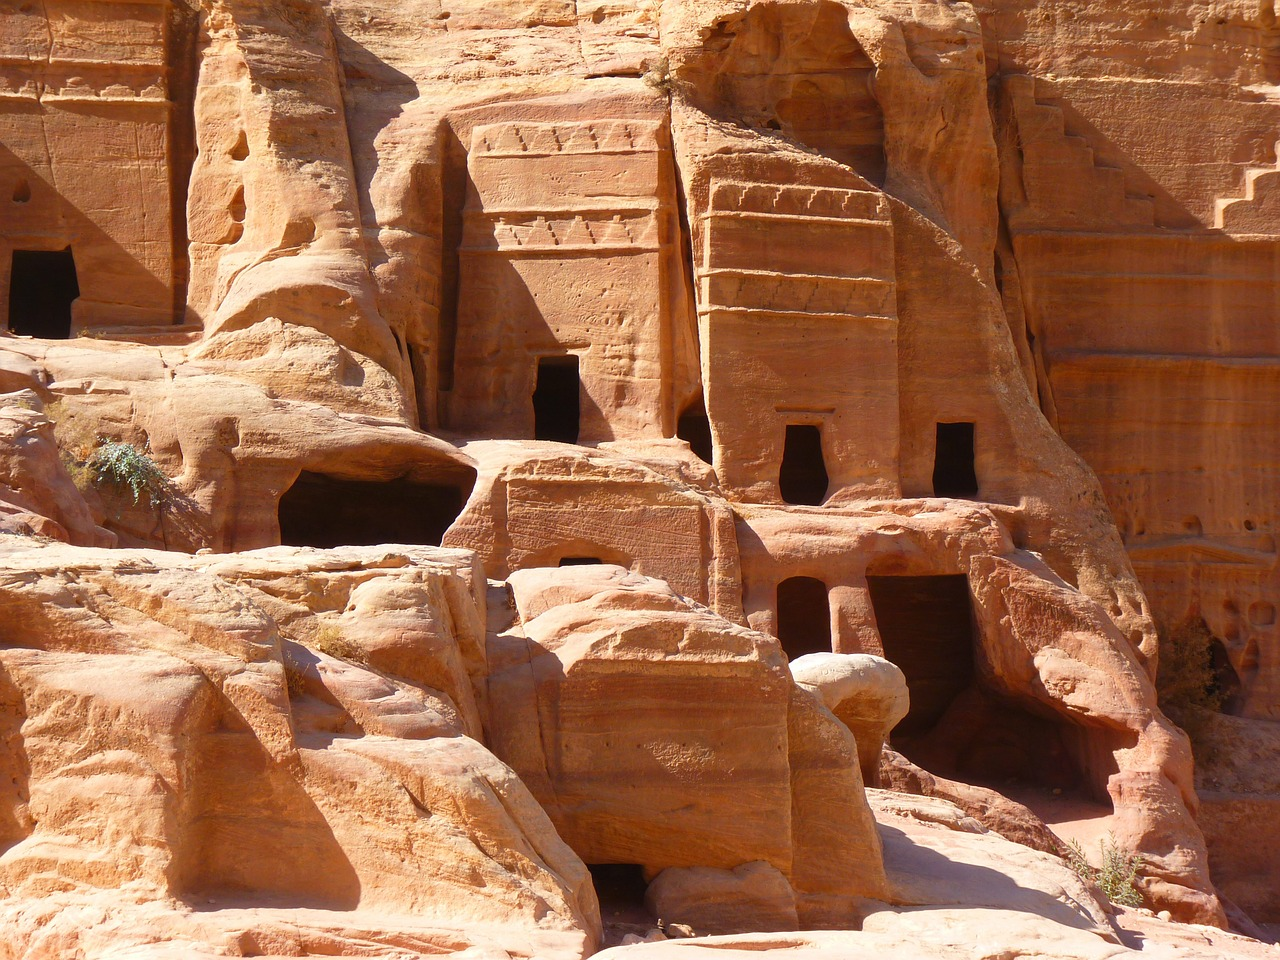 petra jordan holiday free picture